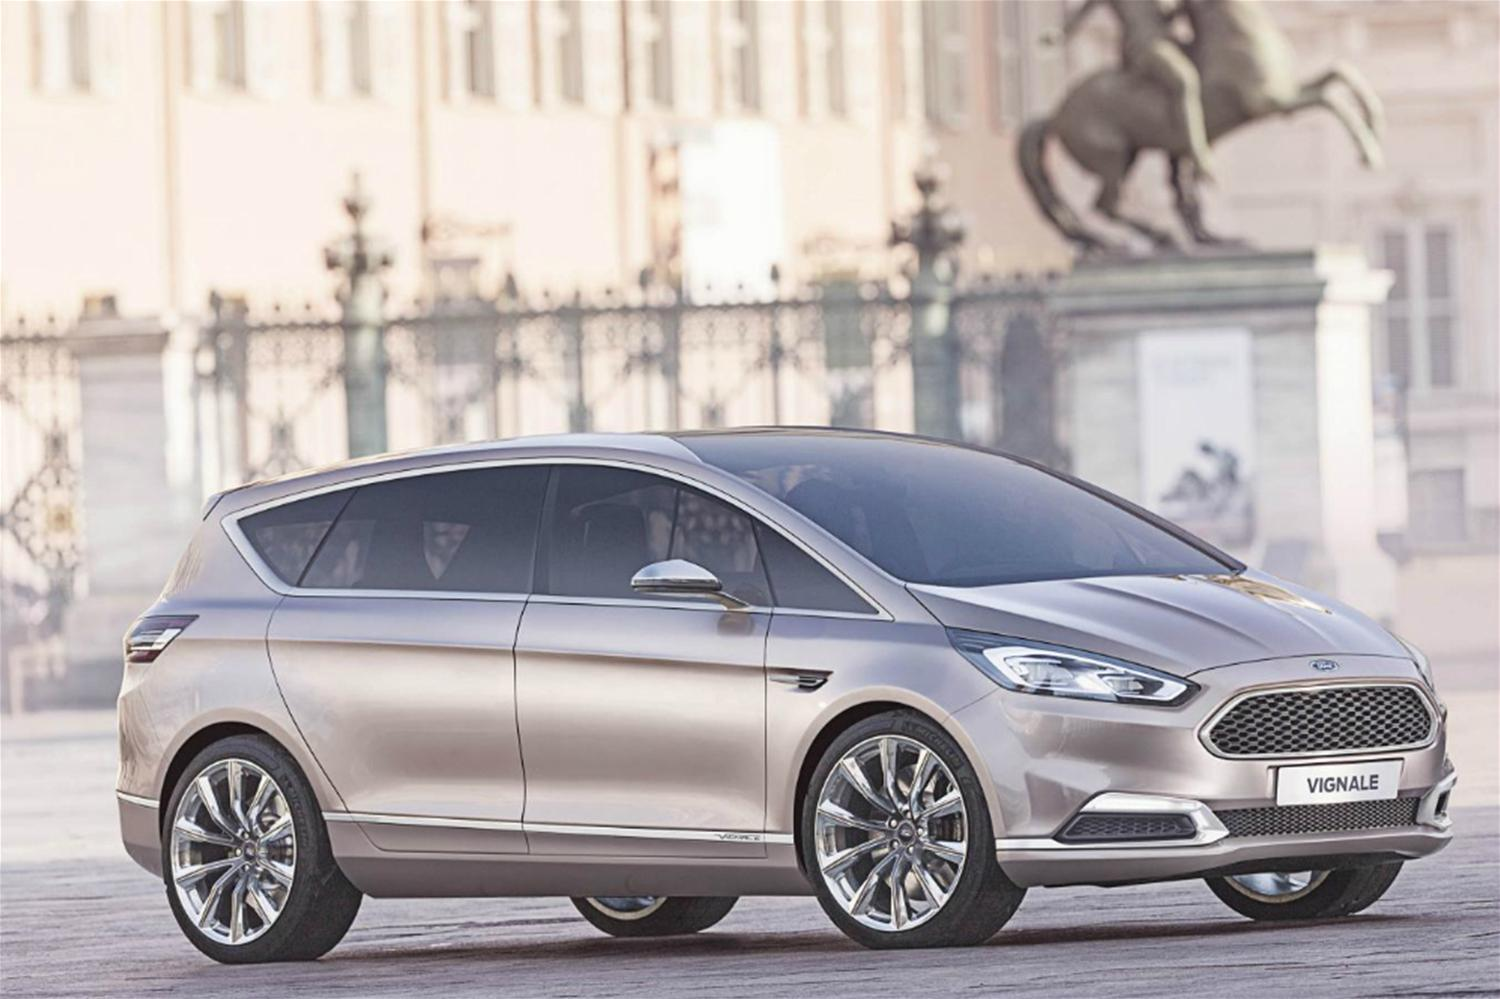 Luxurious Ford S-MAX Vignale Concept Uncovered